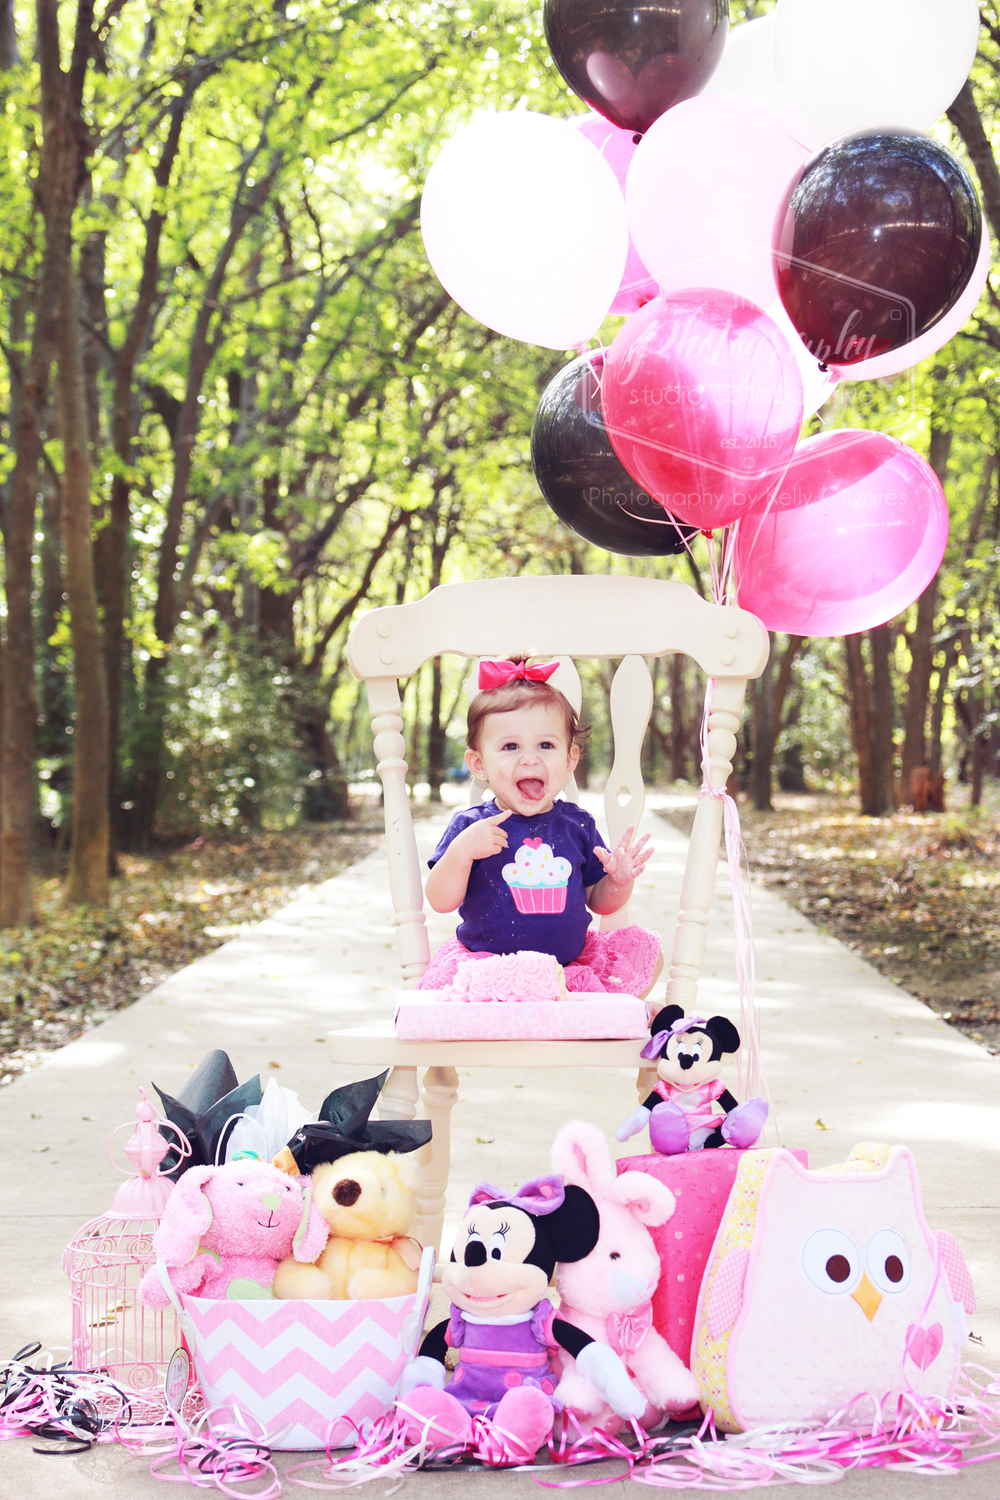 Kelly Olivares Photography Birthday Photography Balloons Cake Minnie Mouse